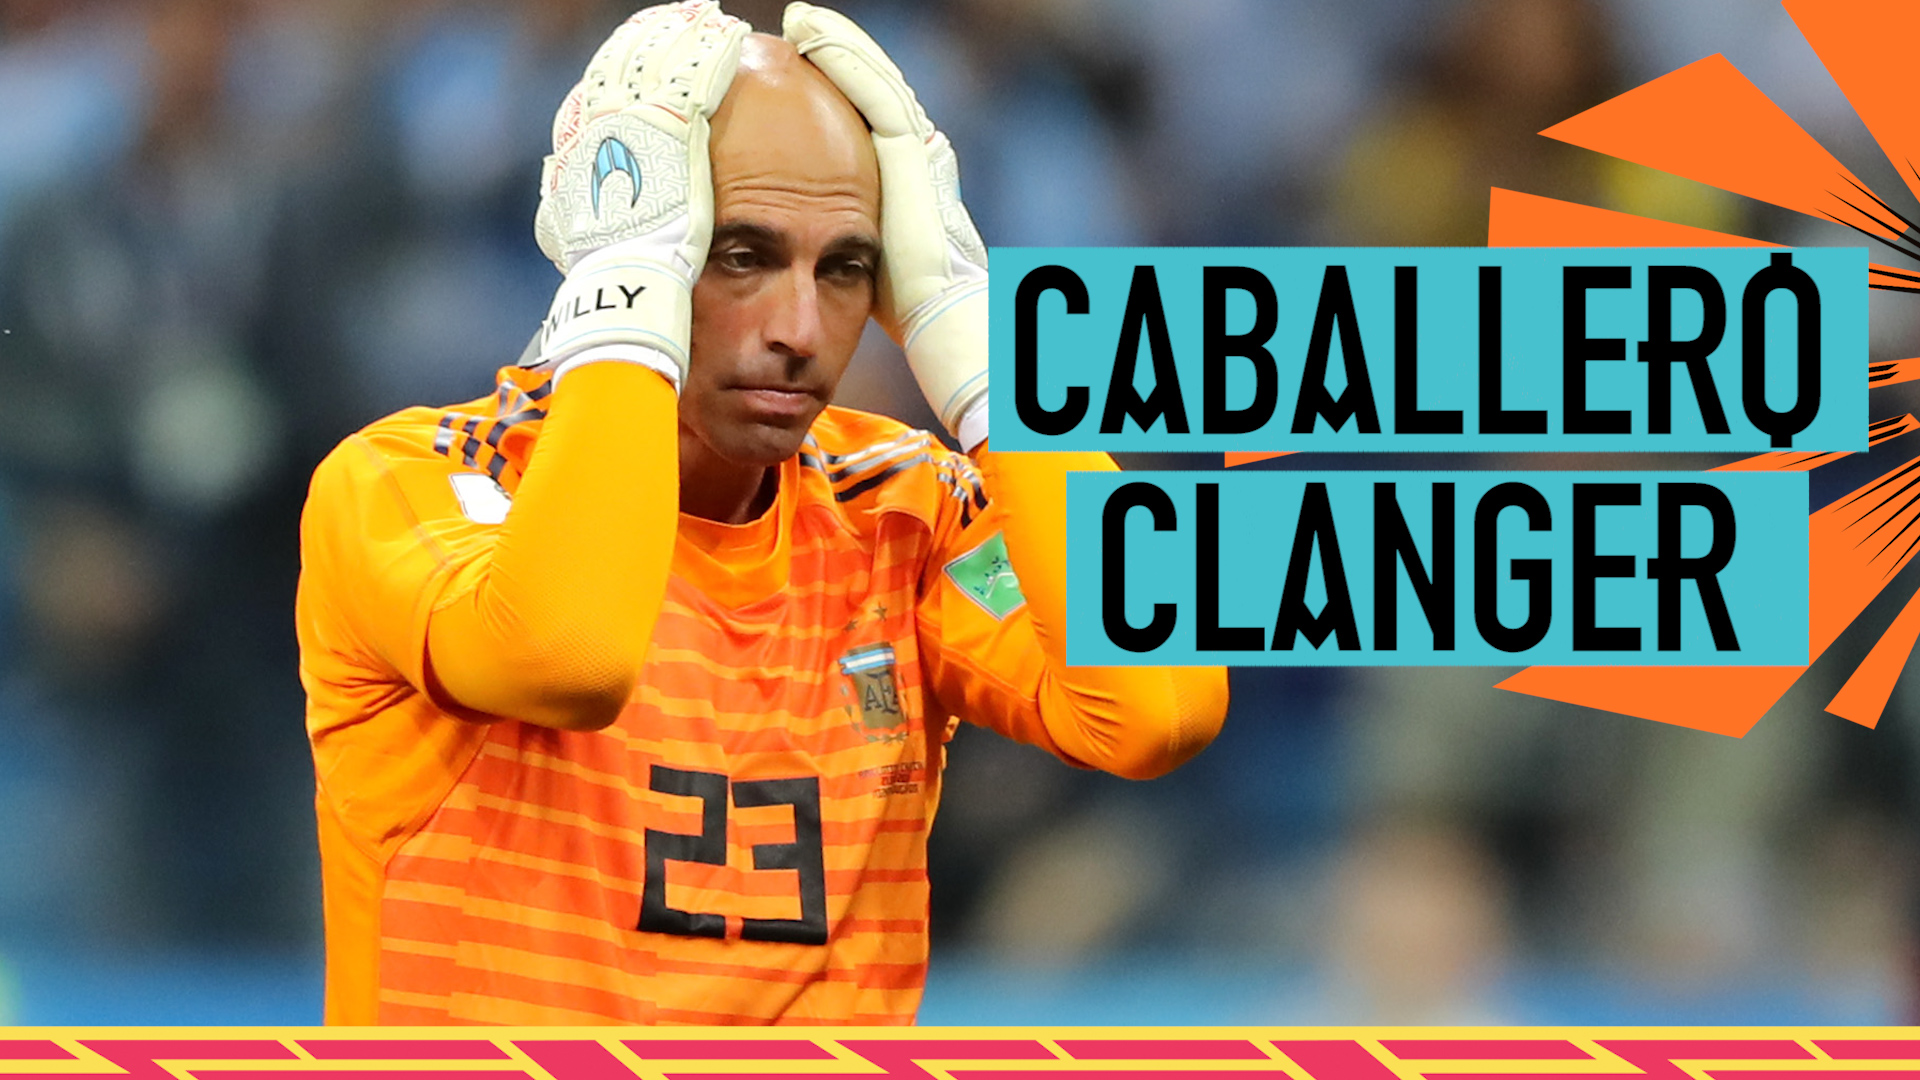 World Cup 2018: 'What an awful mistake' - Willy Caballero clanger gifts Croatia lead